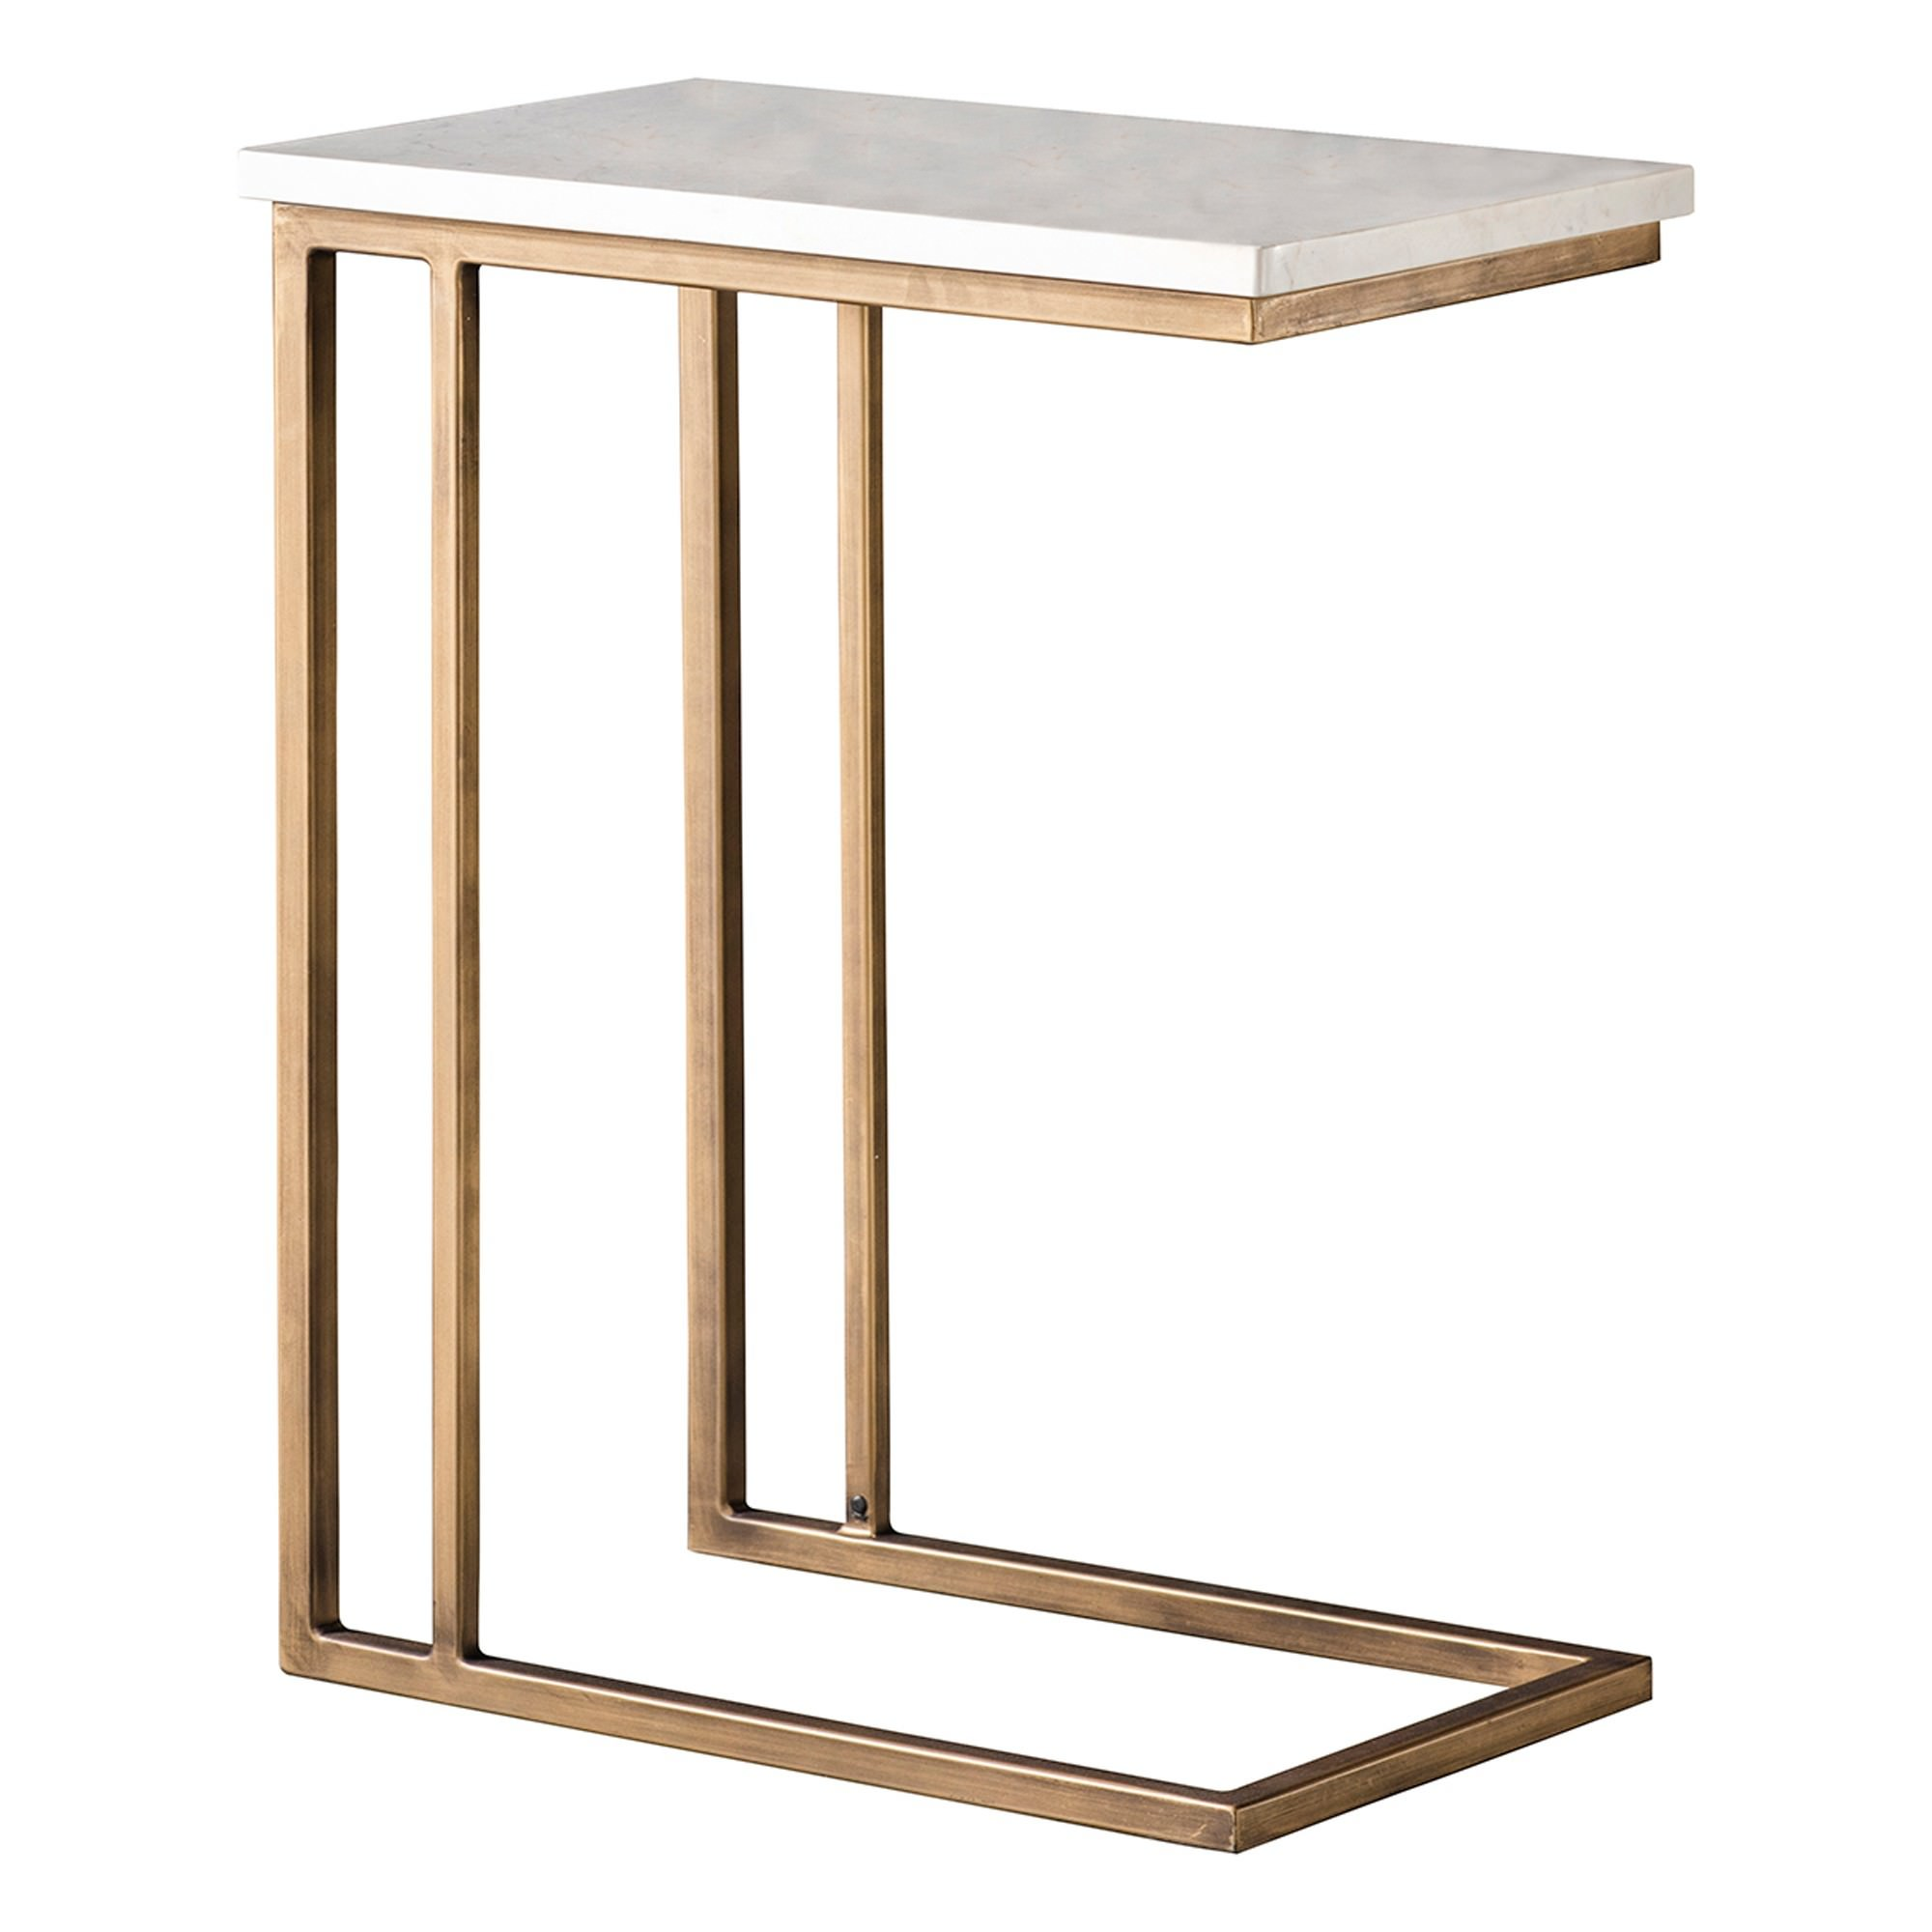 Earl Marble Top C-shape Side Table, White / Brass